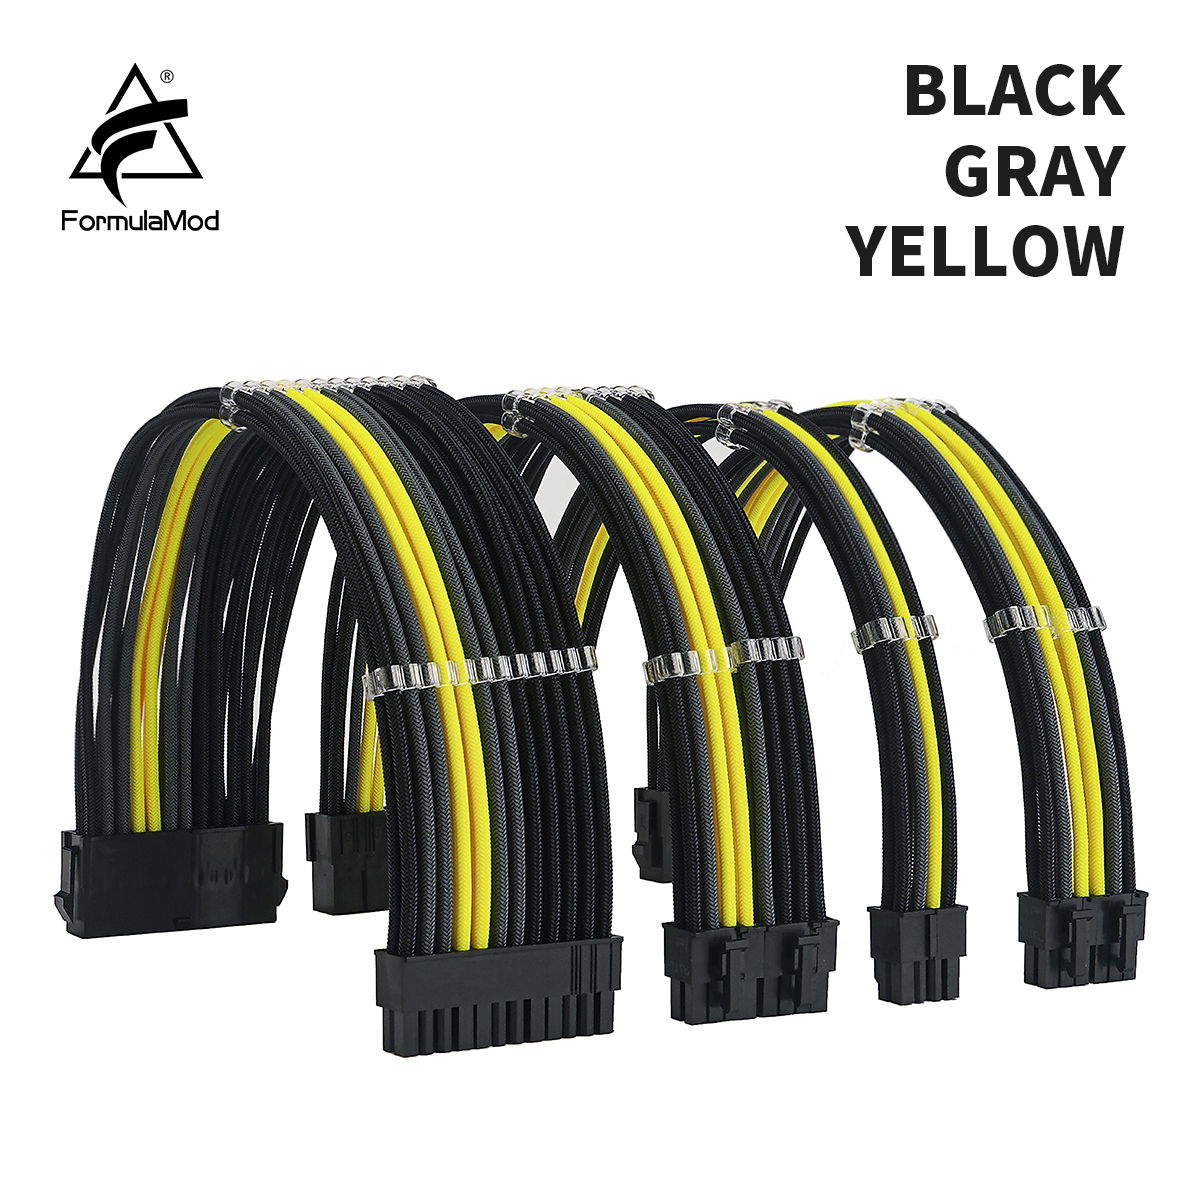 FormulaMod NCK3 Series PSU Extension Cable Kit , Solid Color Cable Mix Combo 300mm ATX24Pin PCI-E8Pin CPU8Pin With Combs